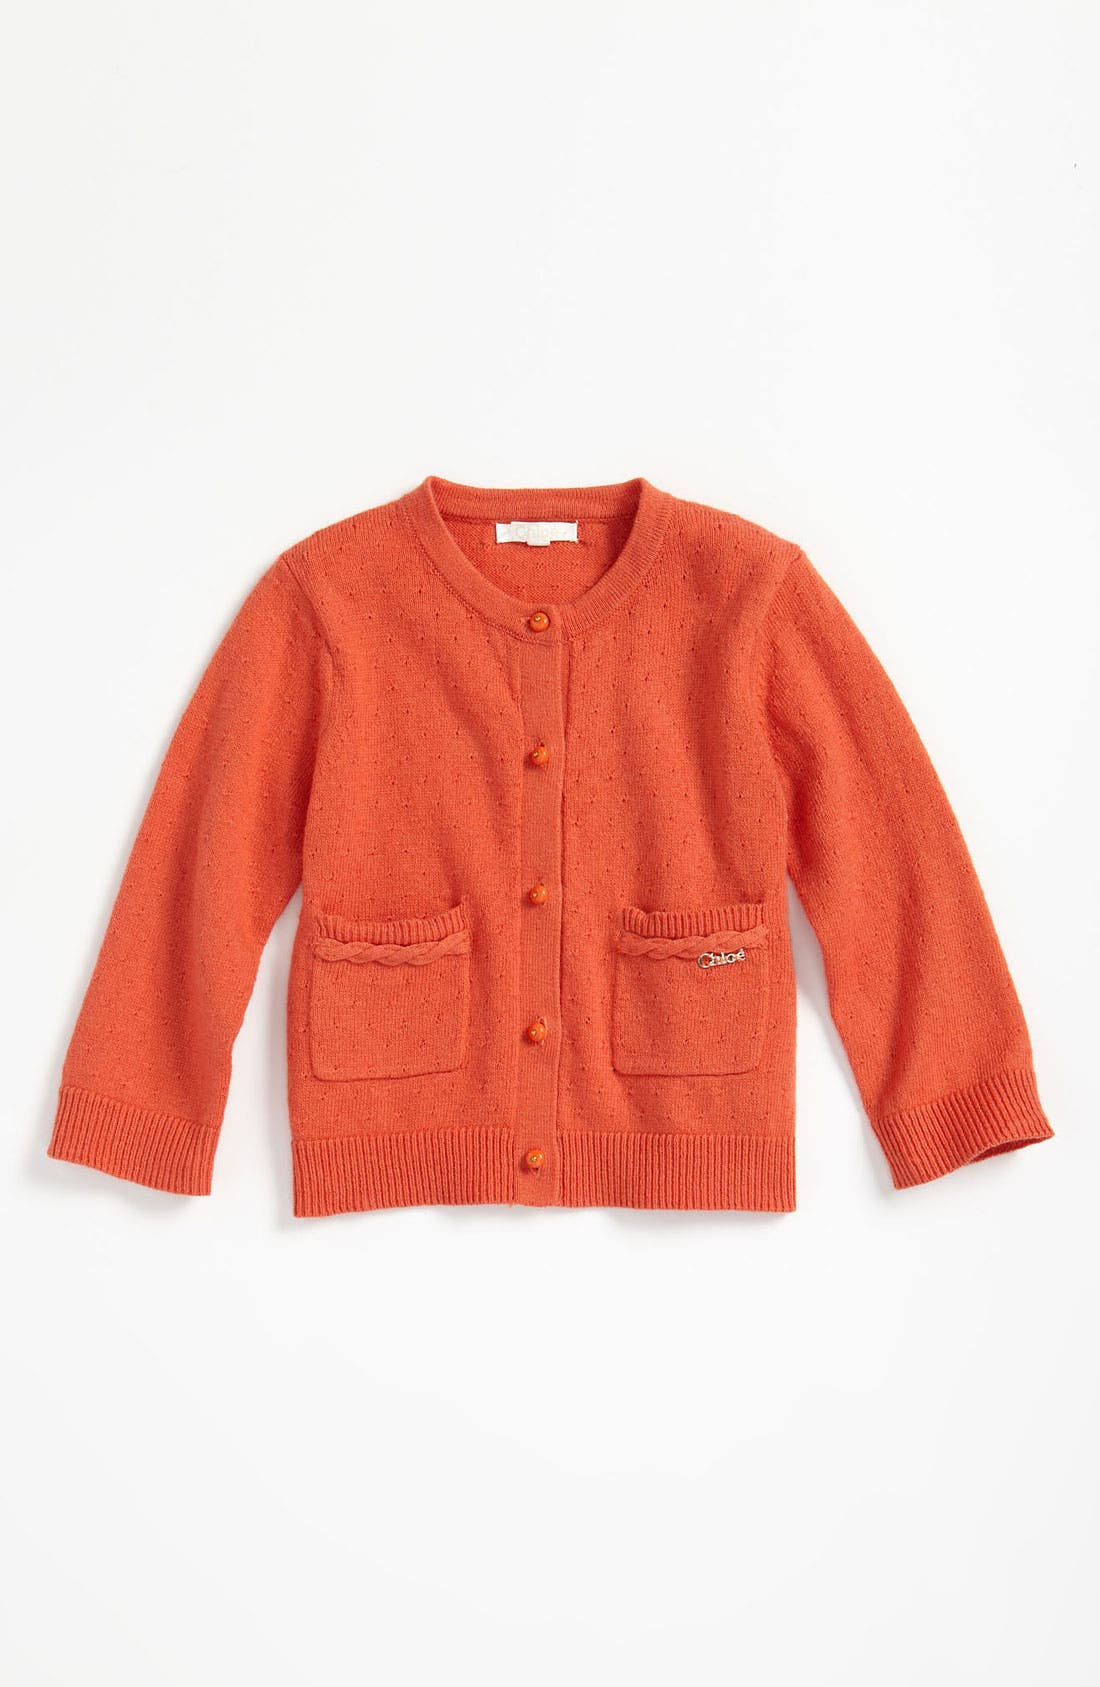 Main Image - Chloé Pointelle Cardigan (Infant)